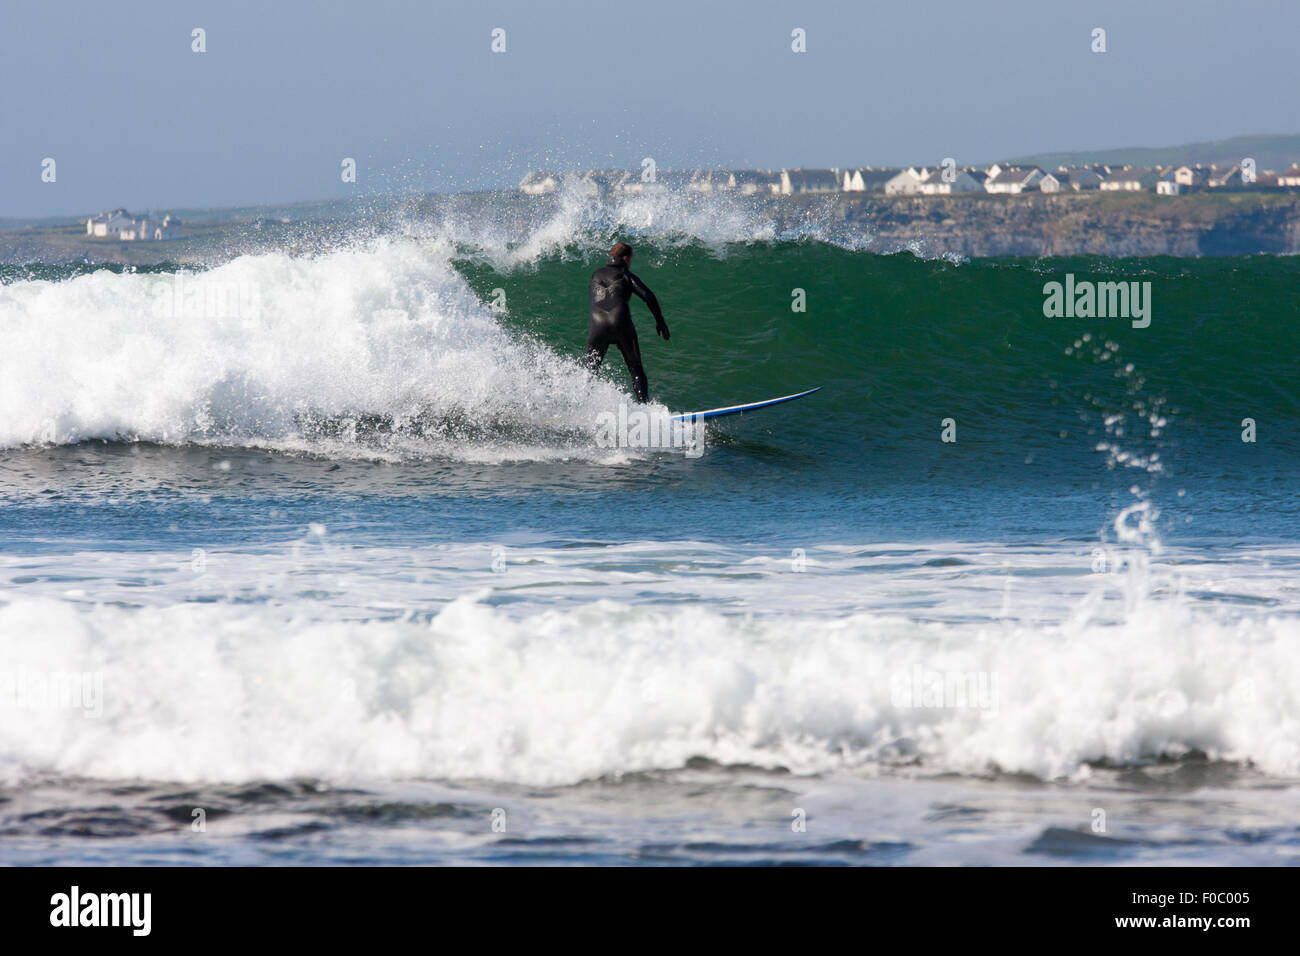 Surfing the Waves off Lahinch beach, Ireland - Stock Image